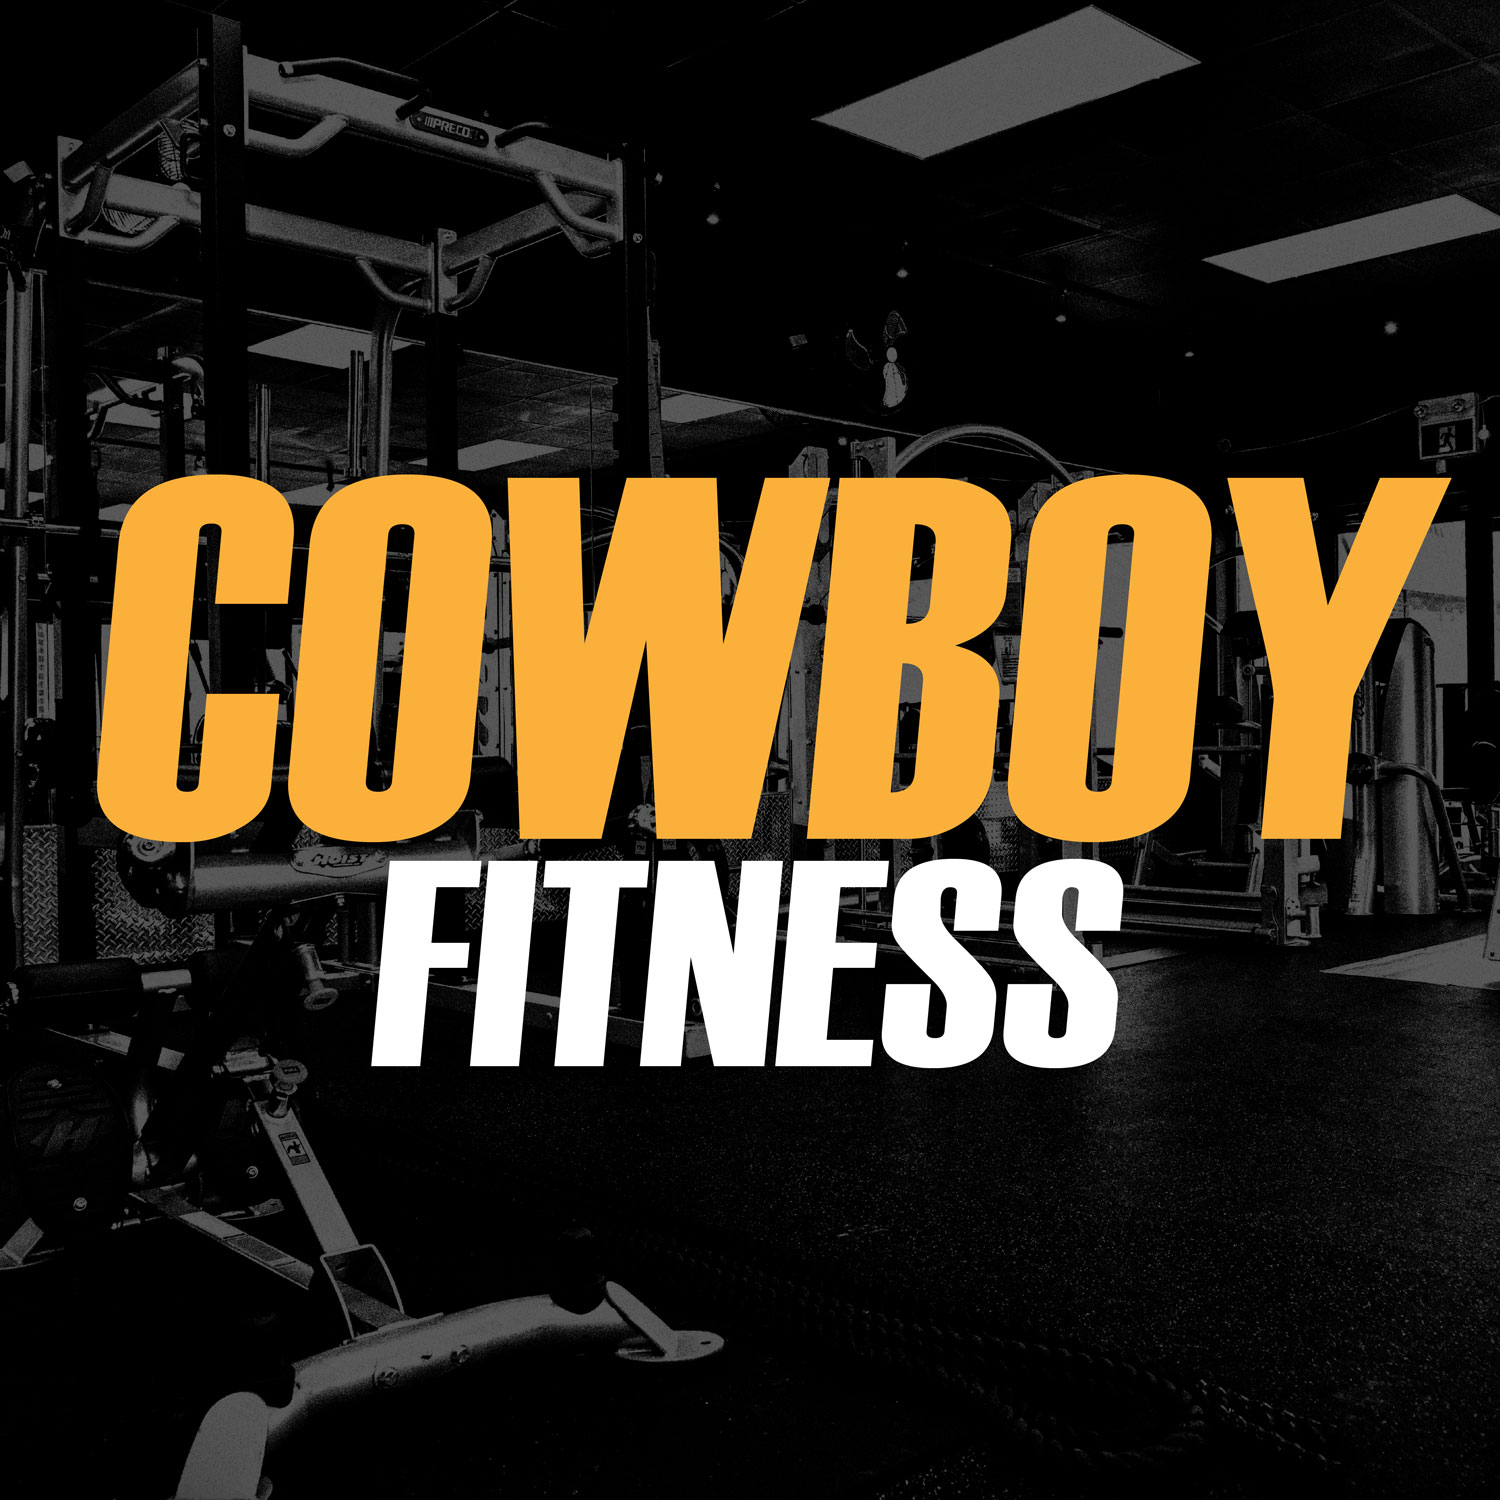 ATME - Cowboy Fitness Profile picture